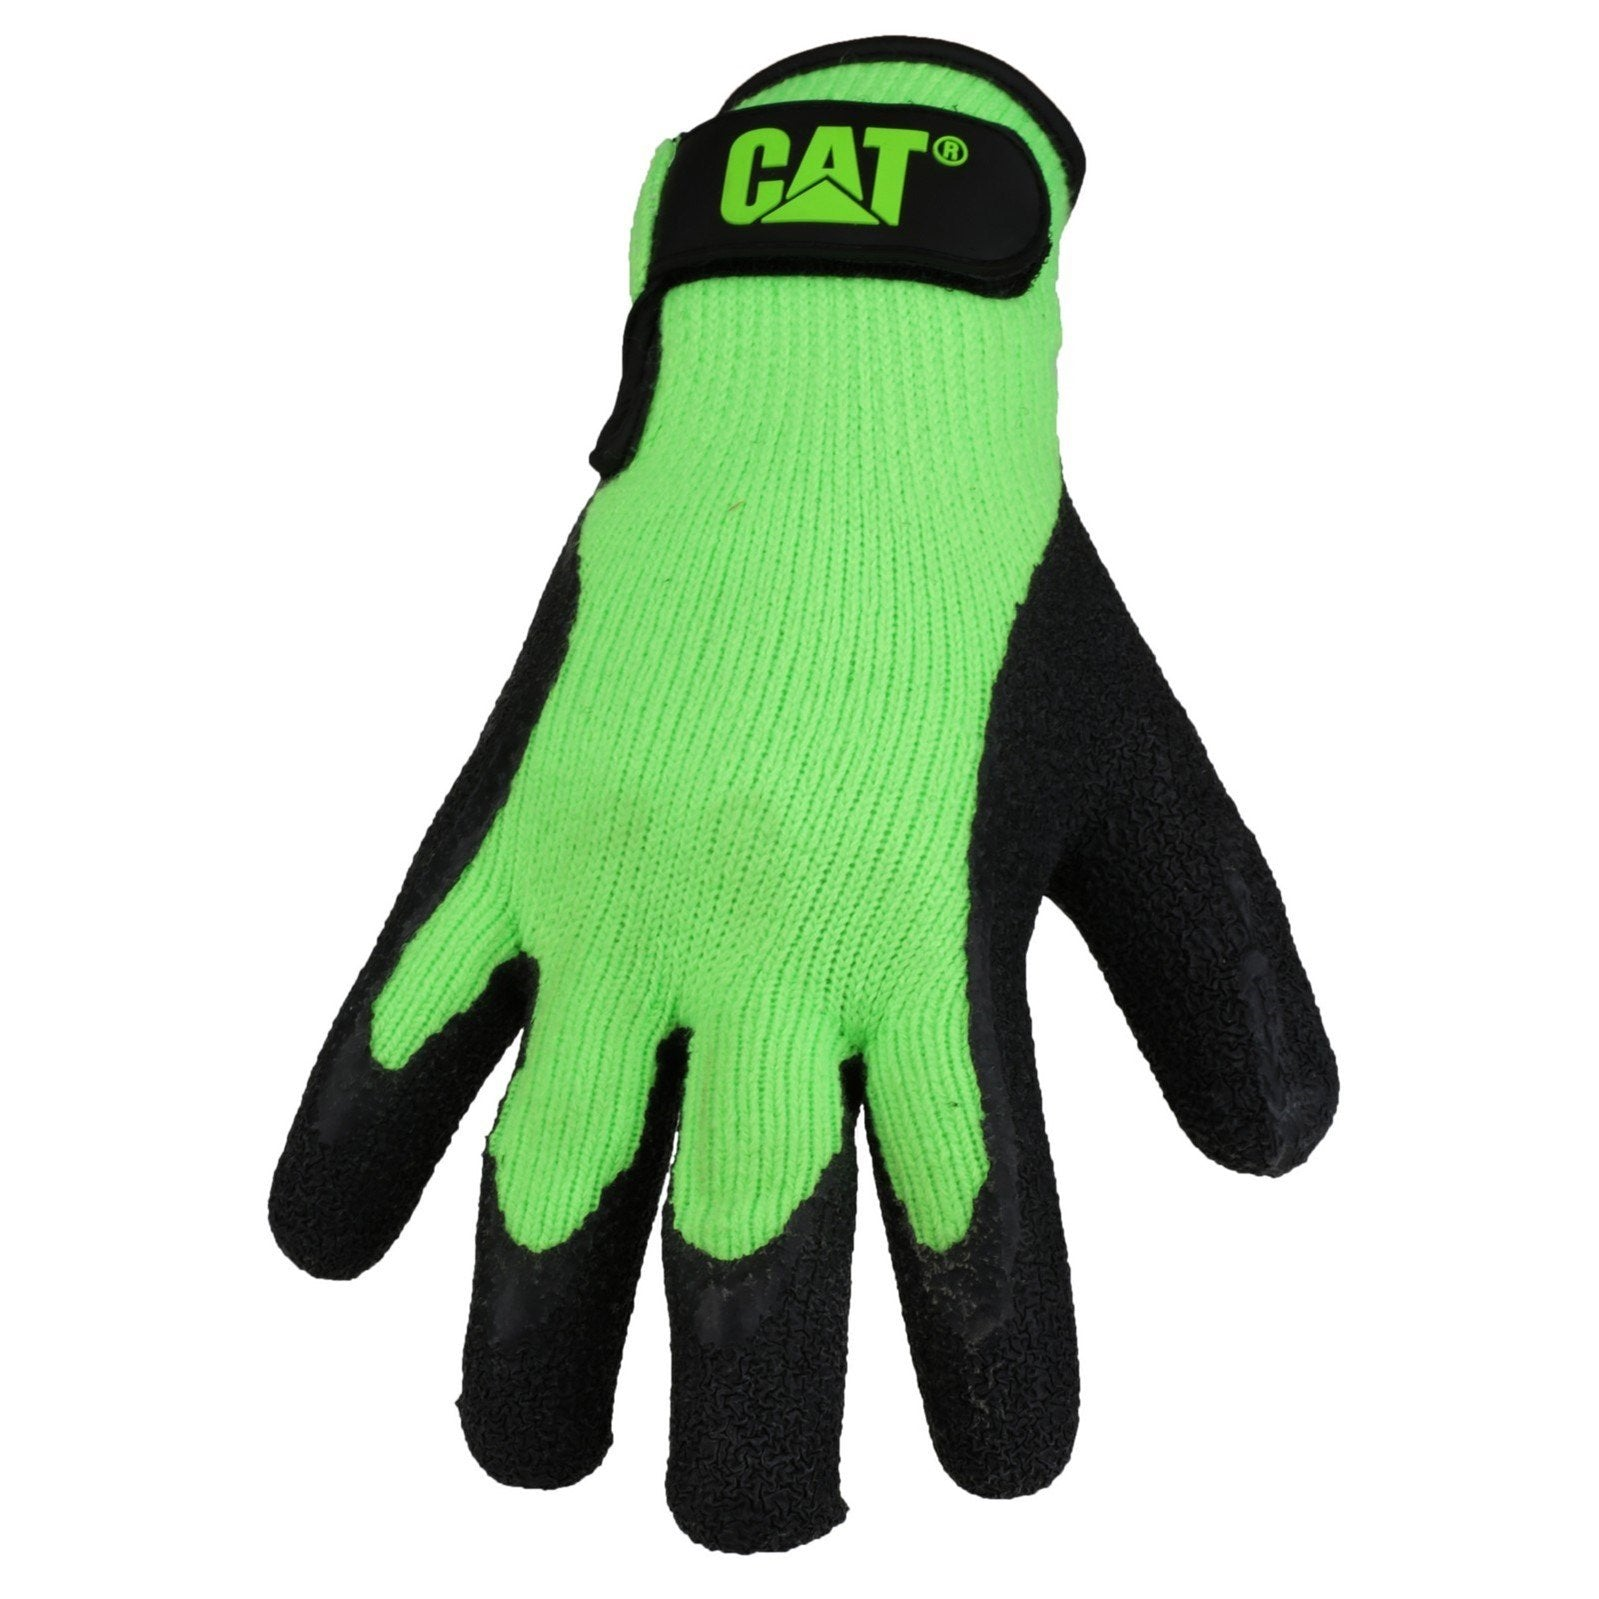 Caterpillar Cat 17417 Latex Palm Glove